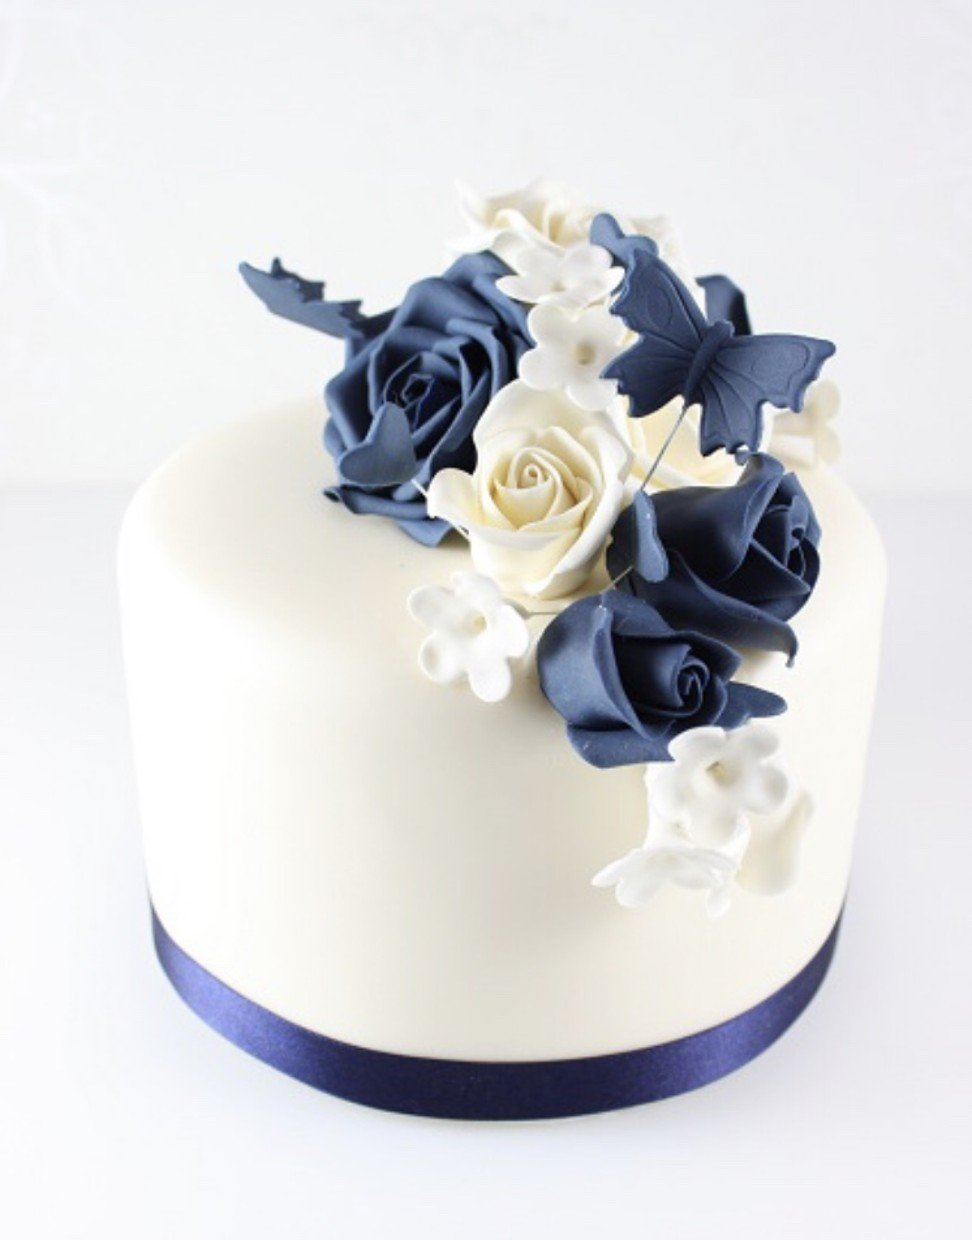 5 instagrammable birthday cakes that will make perfect social media the royal lady organic and gluten free chocolate fondant cake has white deep royal blue flowers with a white pearly finish izmirmasajfo